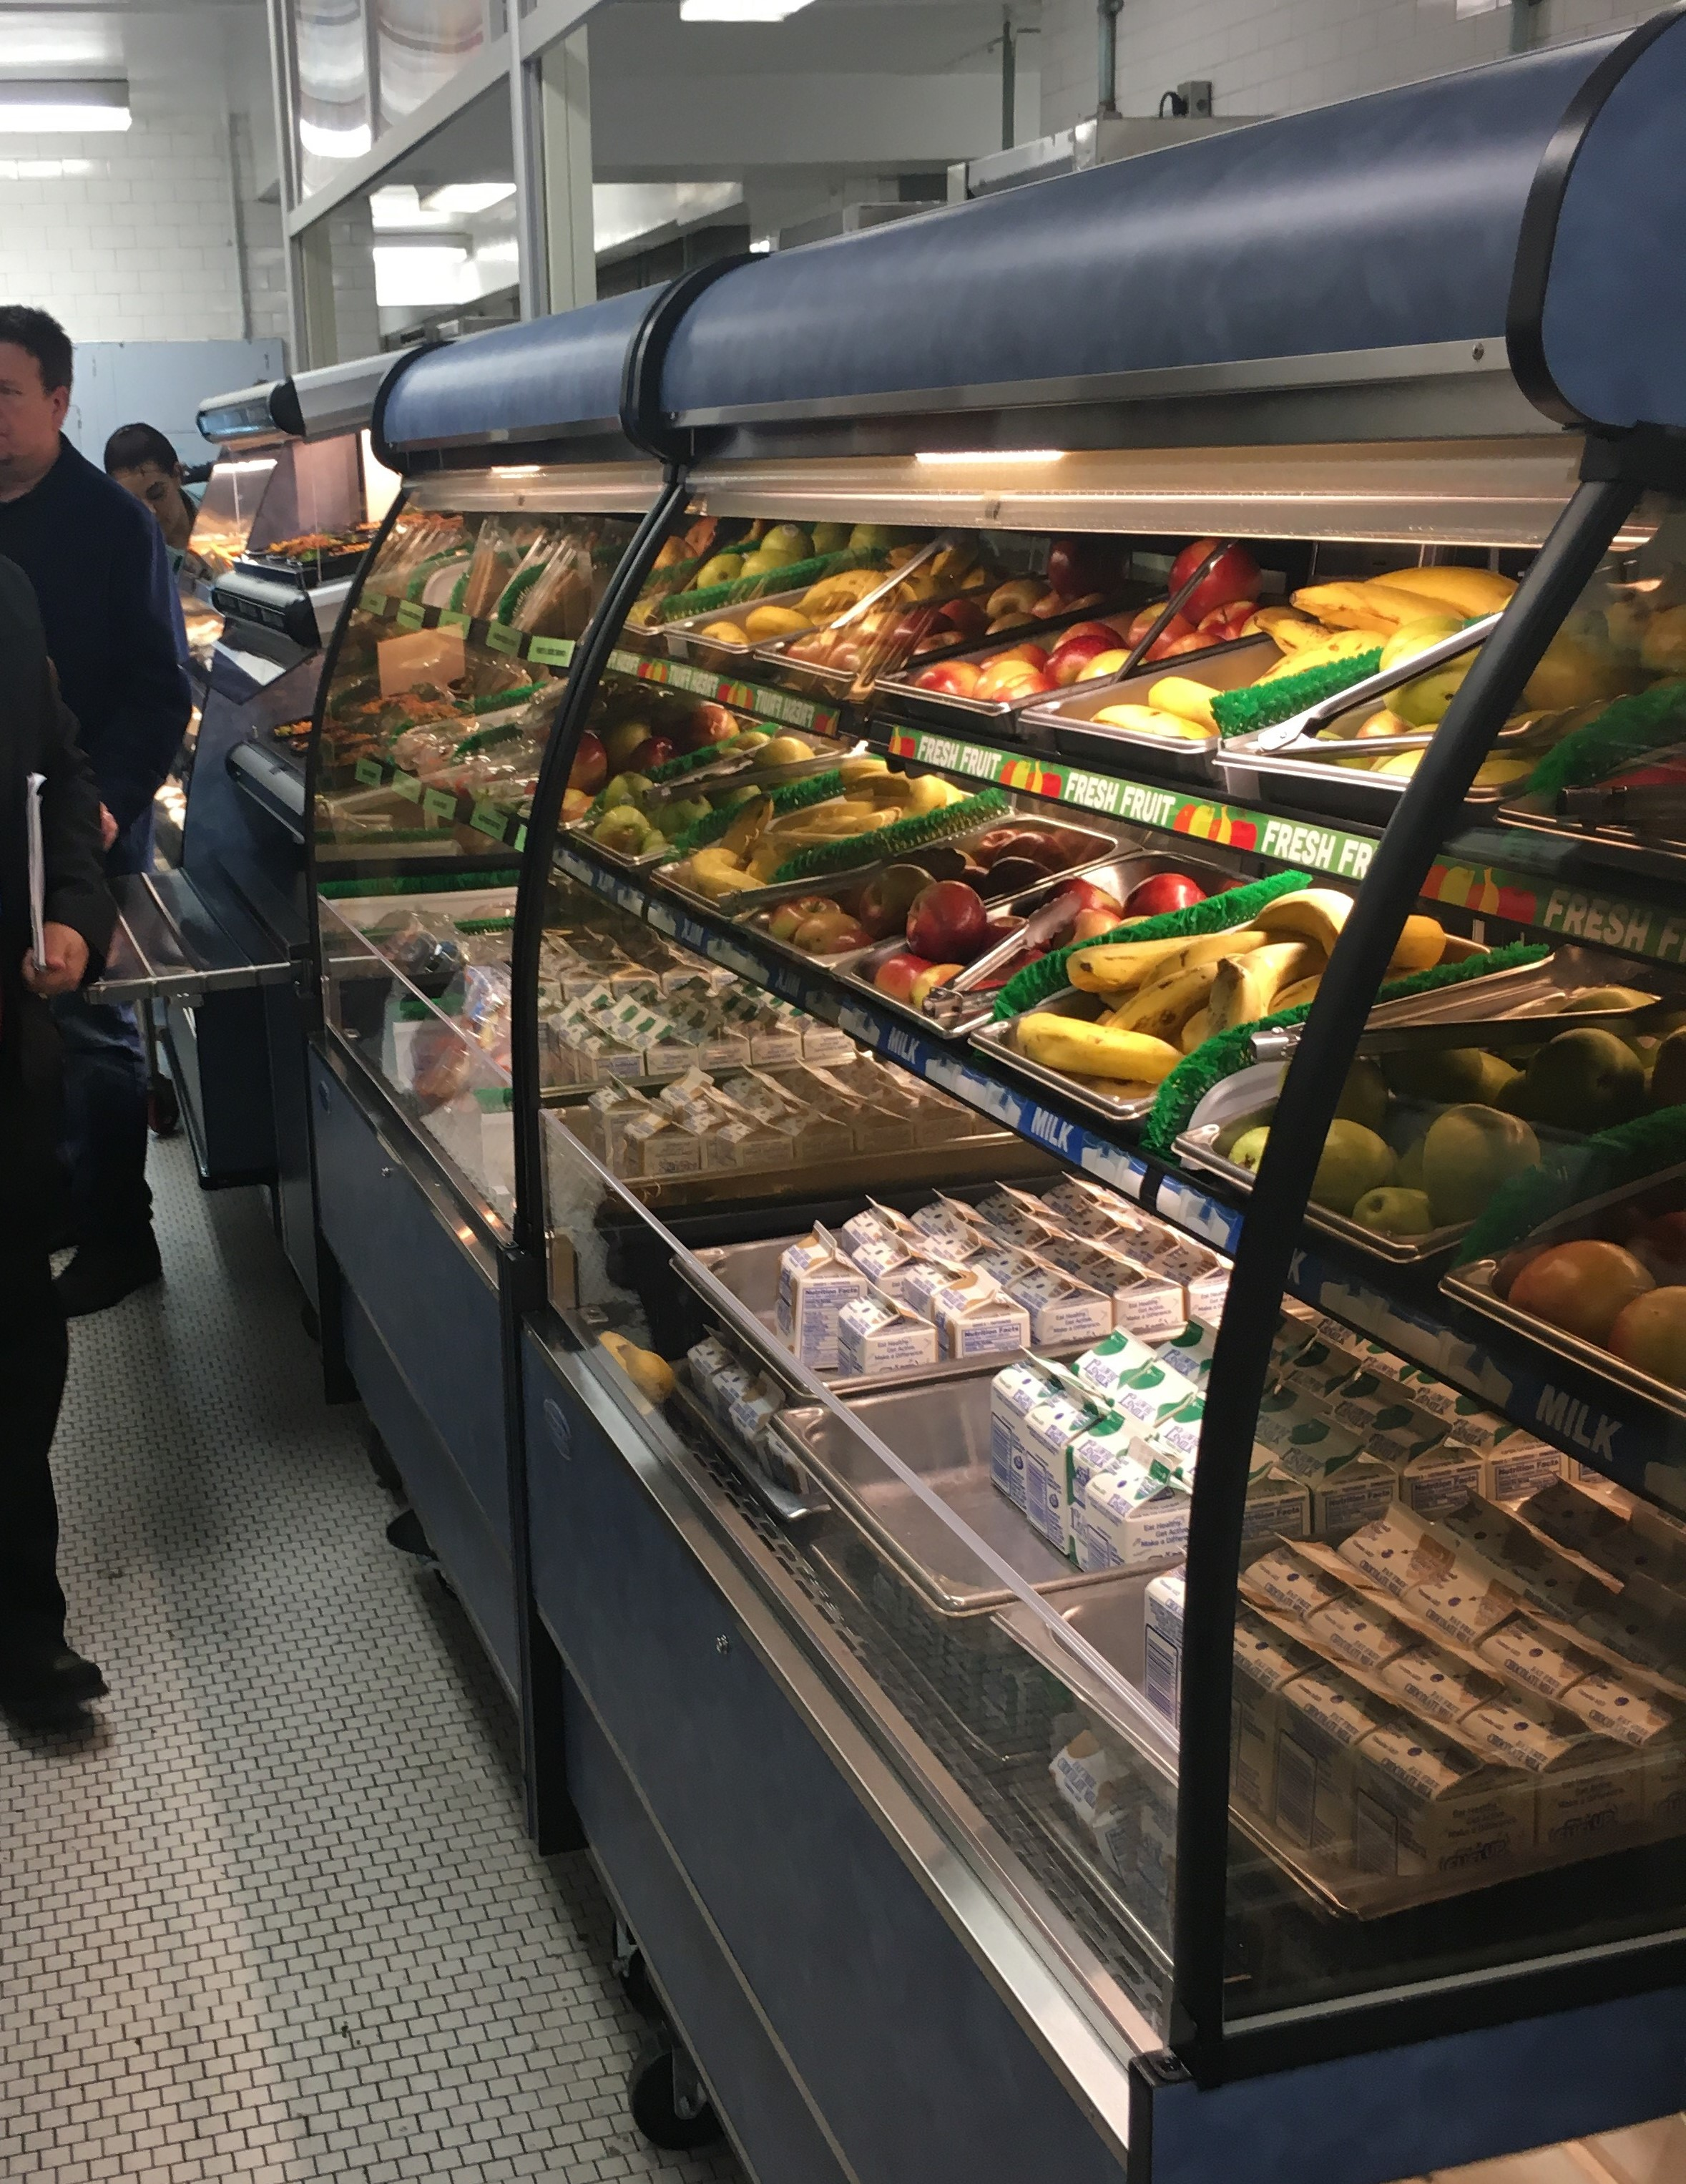 School Refrigerated Self-Serve Merchandiser Continuous line-up 2